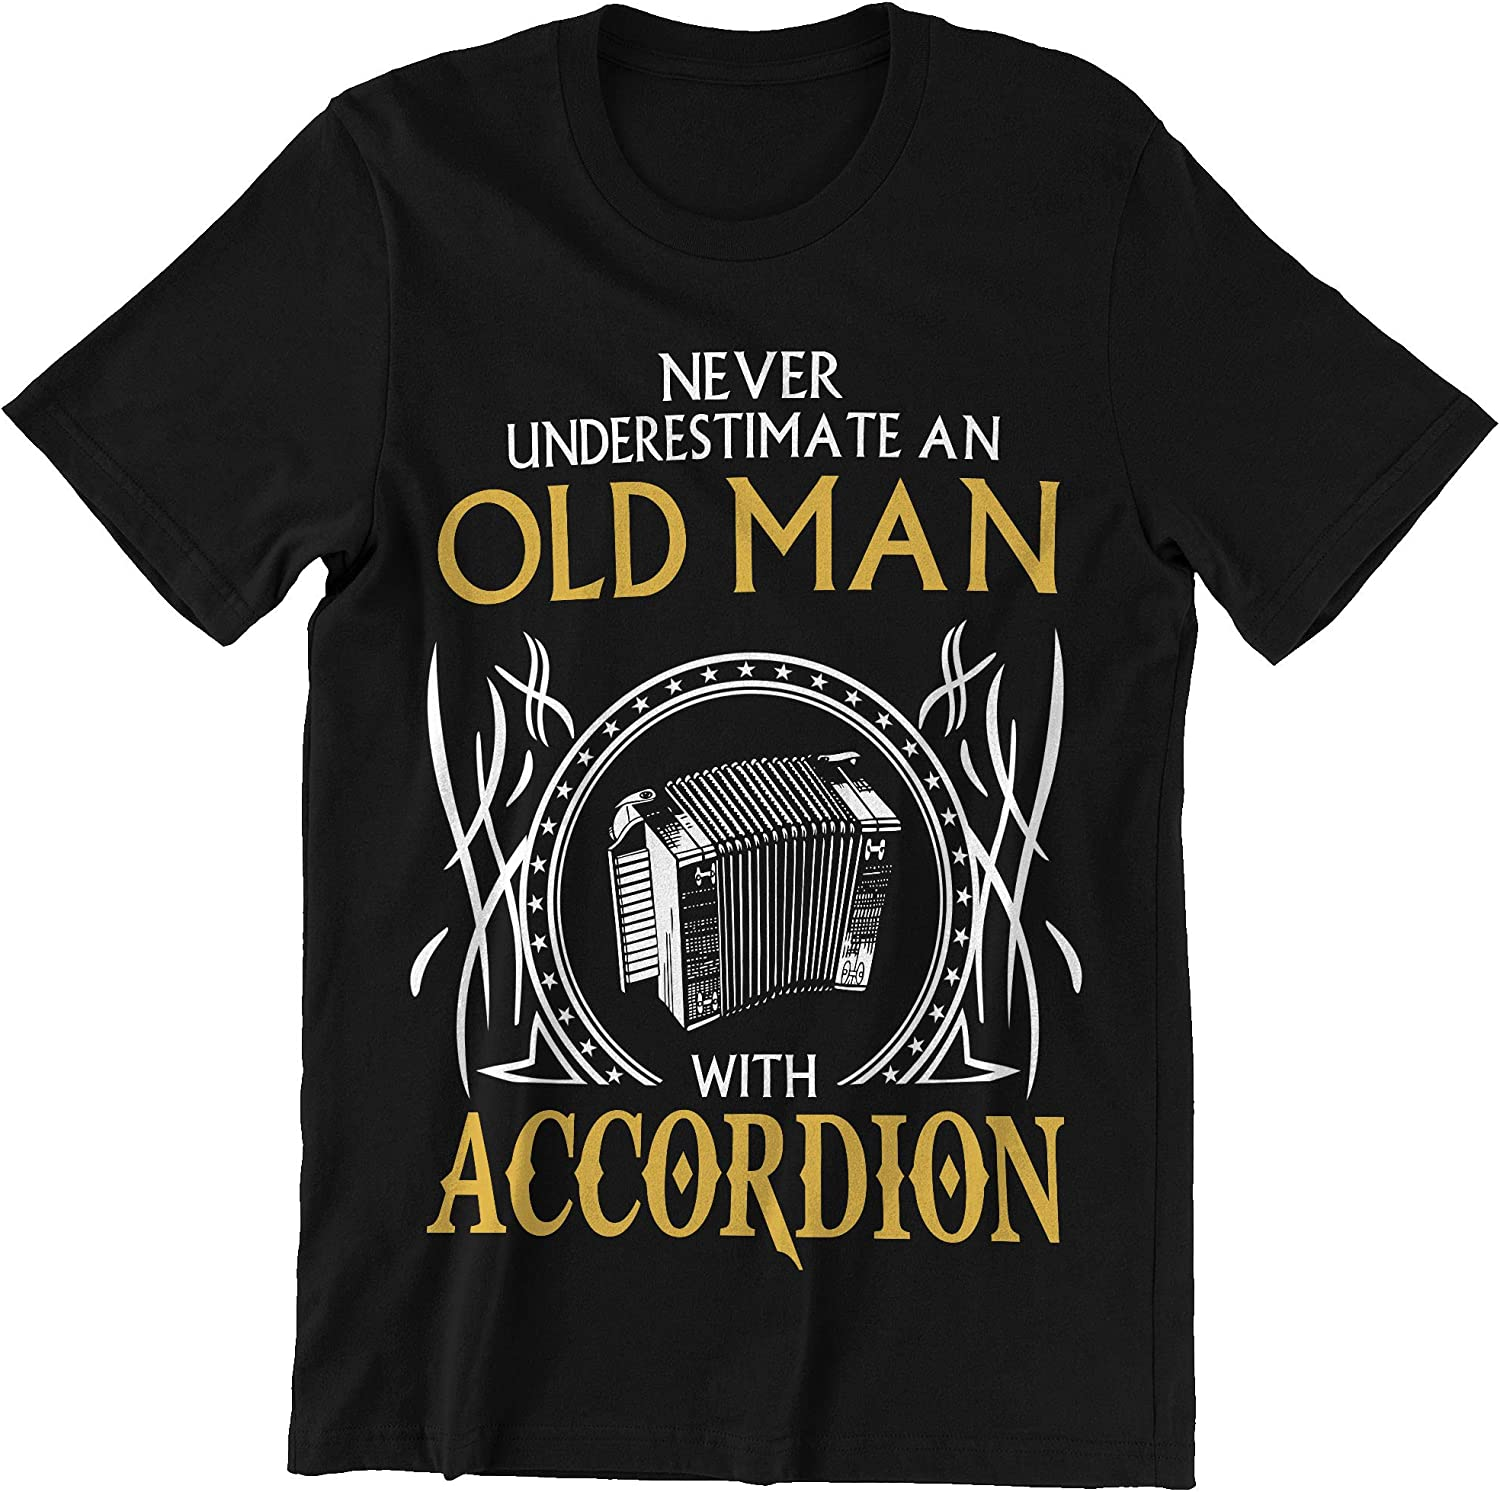 Ladonna Accordion Old Man New mail order with Don't miss the campaign Shirt